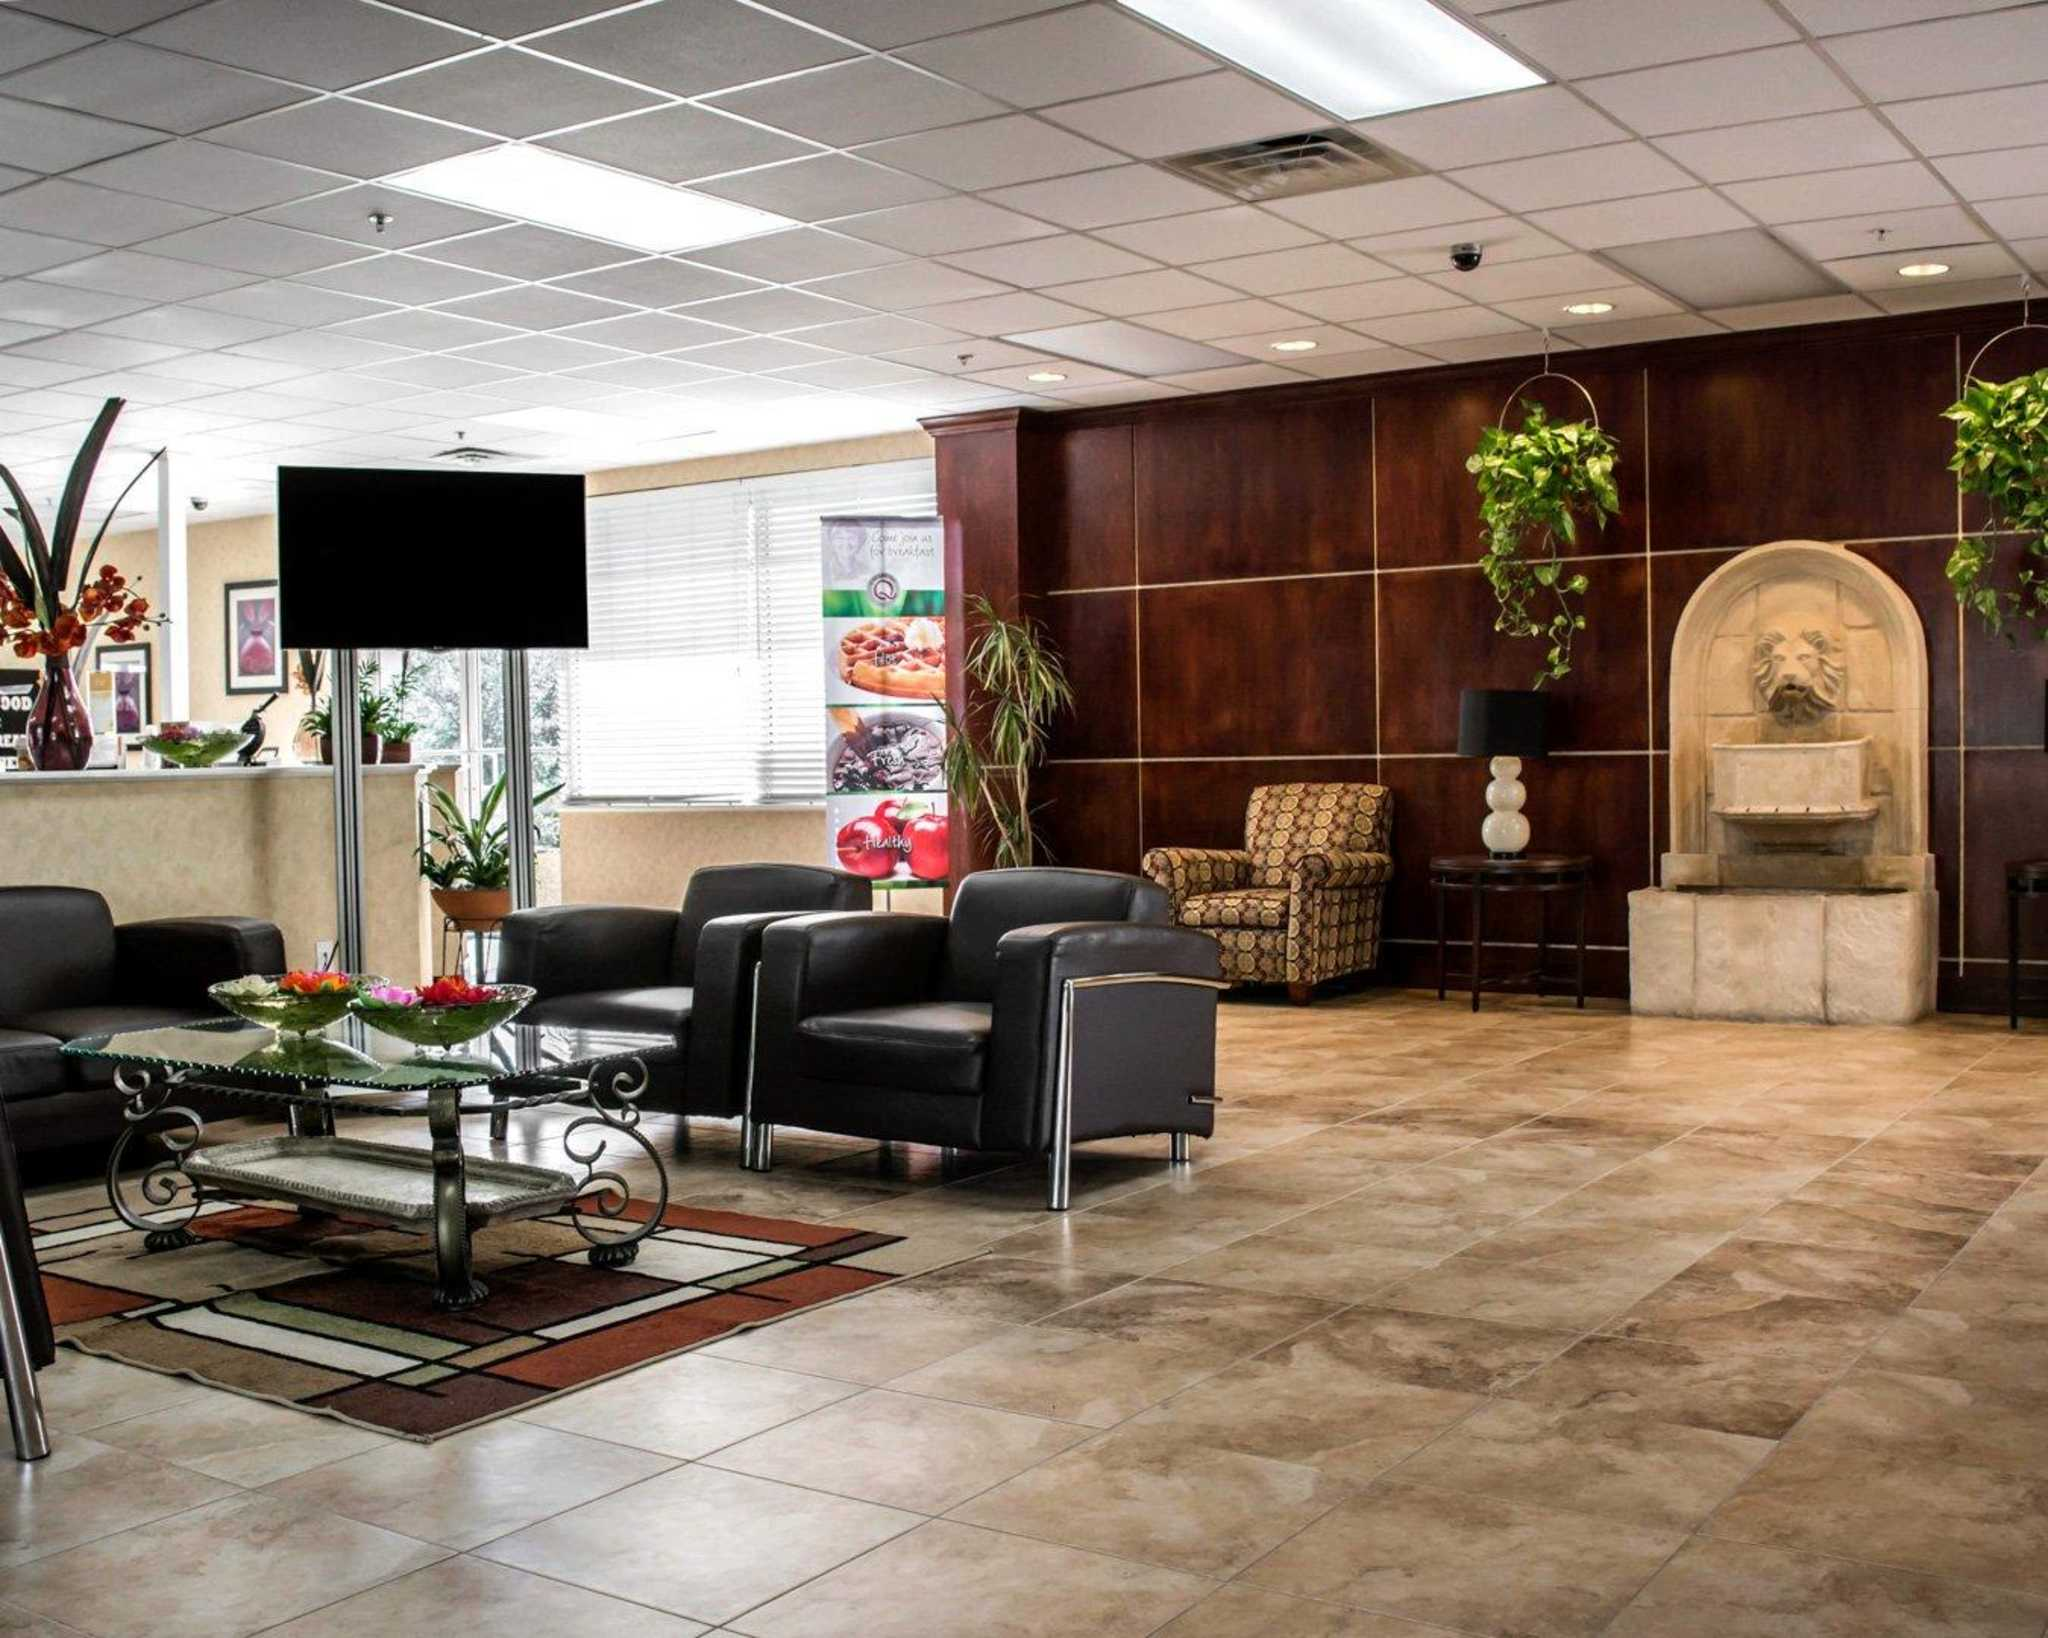 Hotels With Connecting Rooms In Tampa Fl